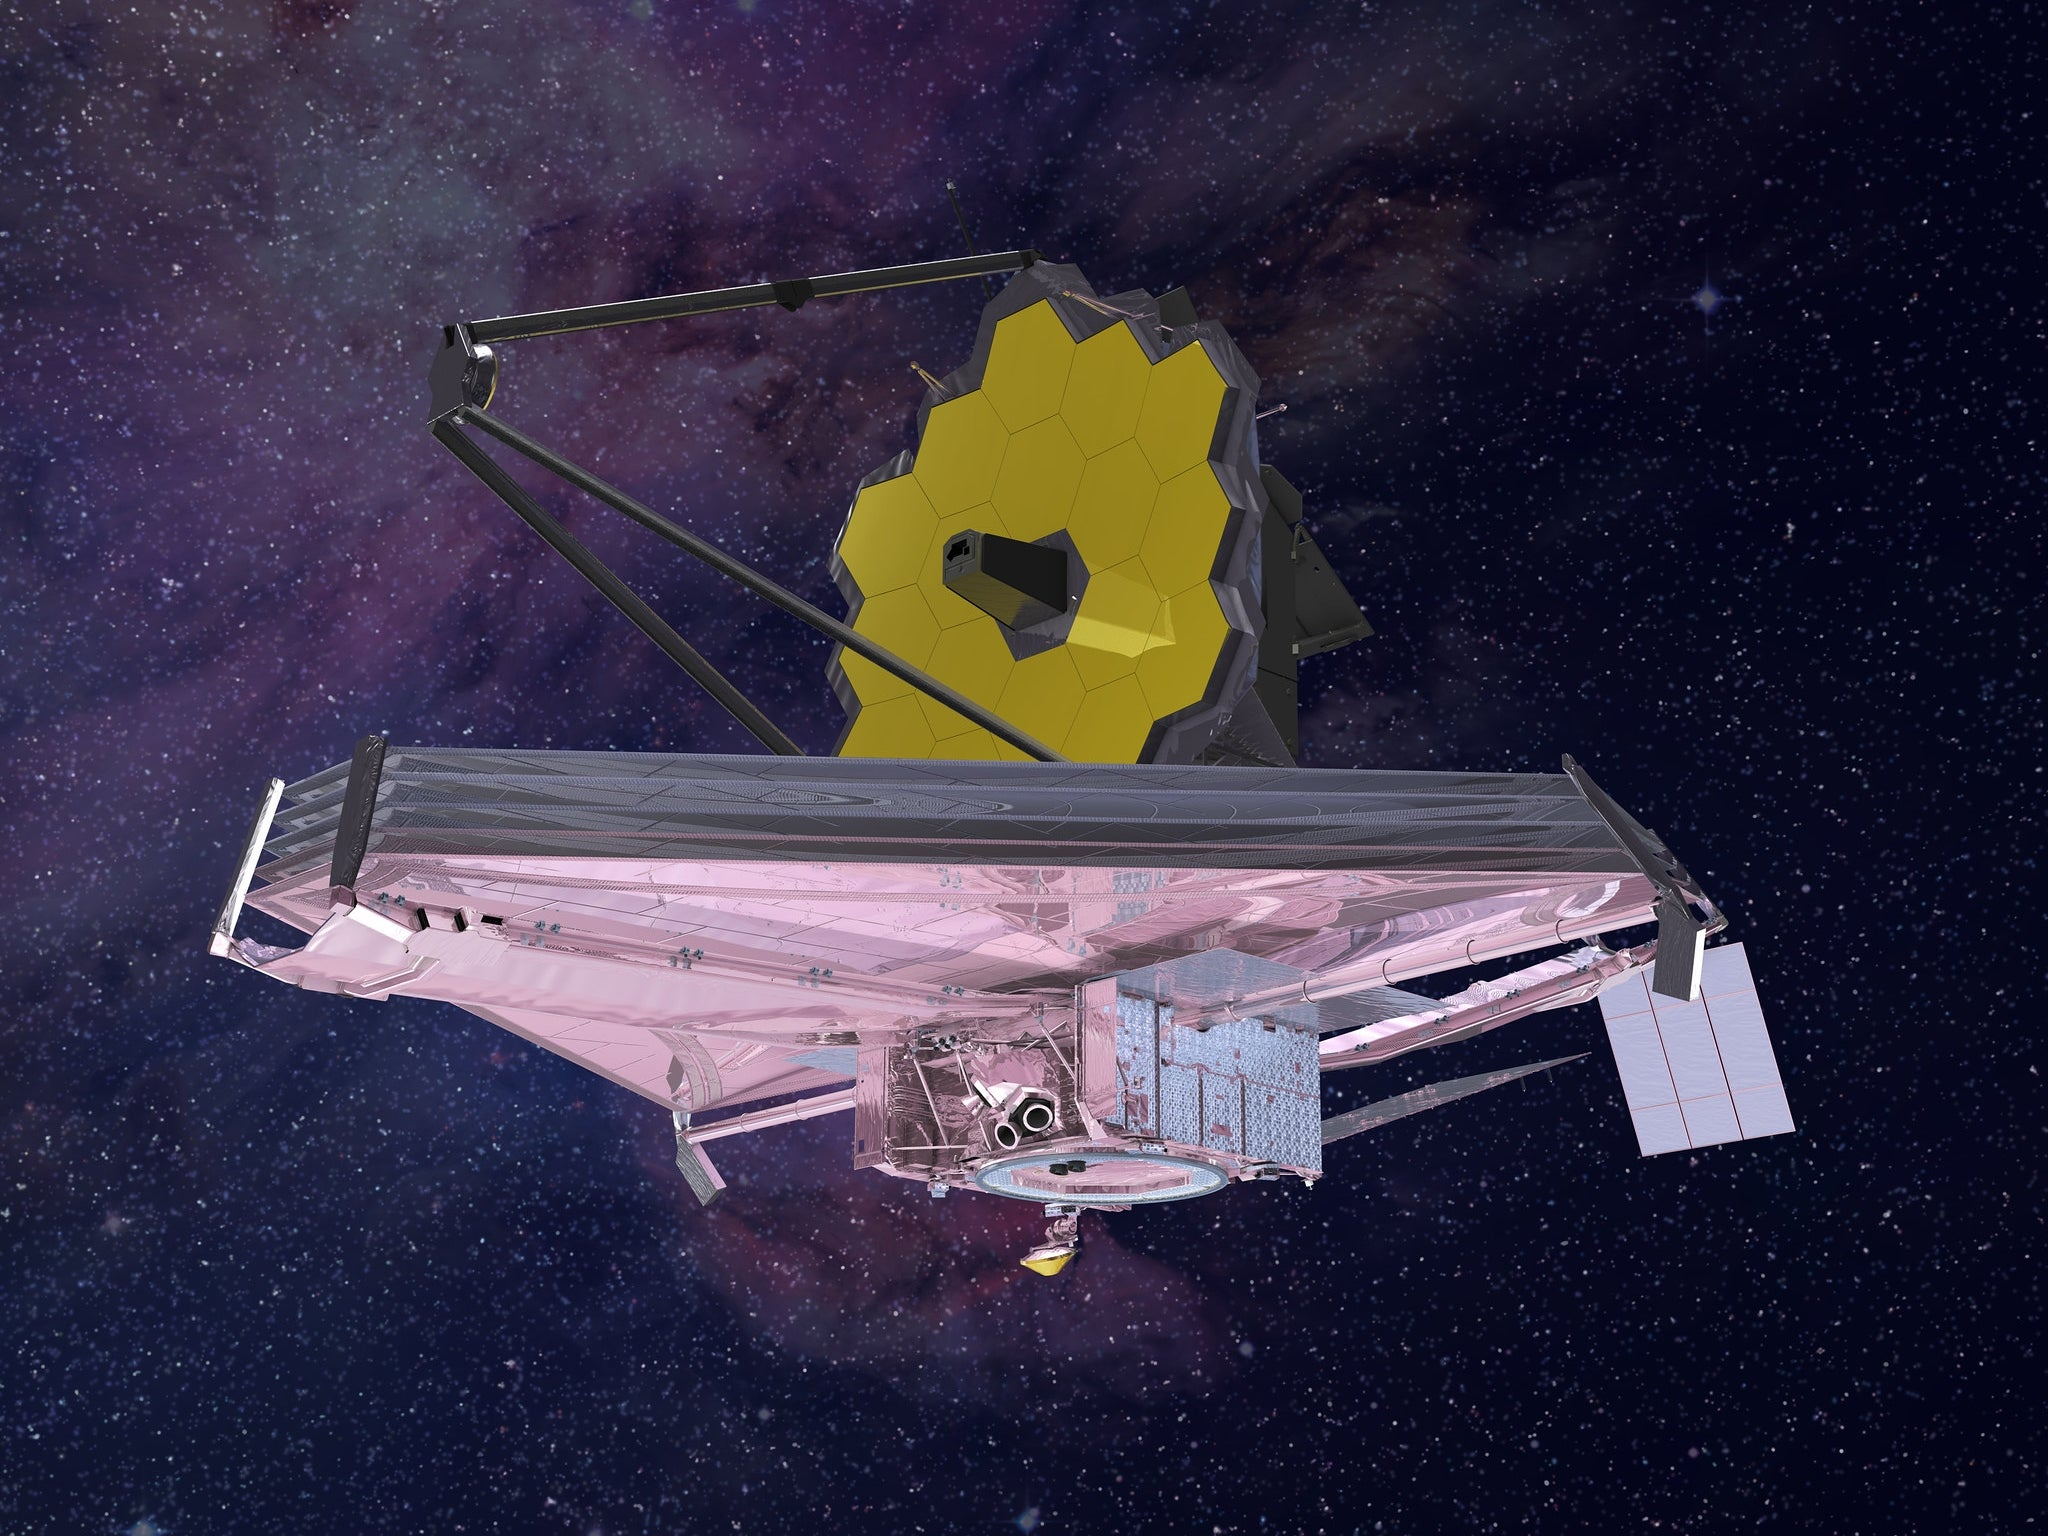 An artist's impression of the James Webb Space Telescope, finally set to launch this year.